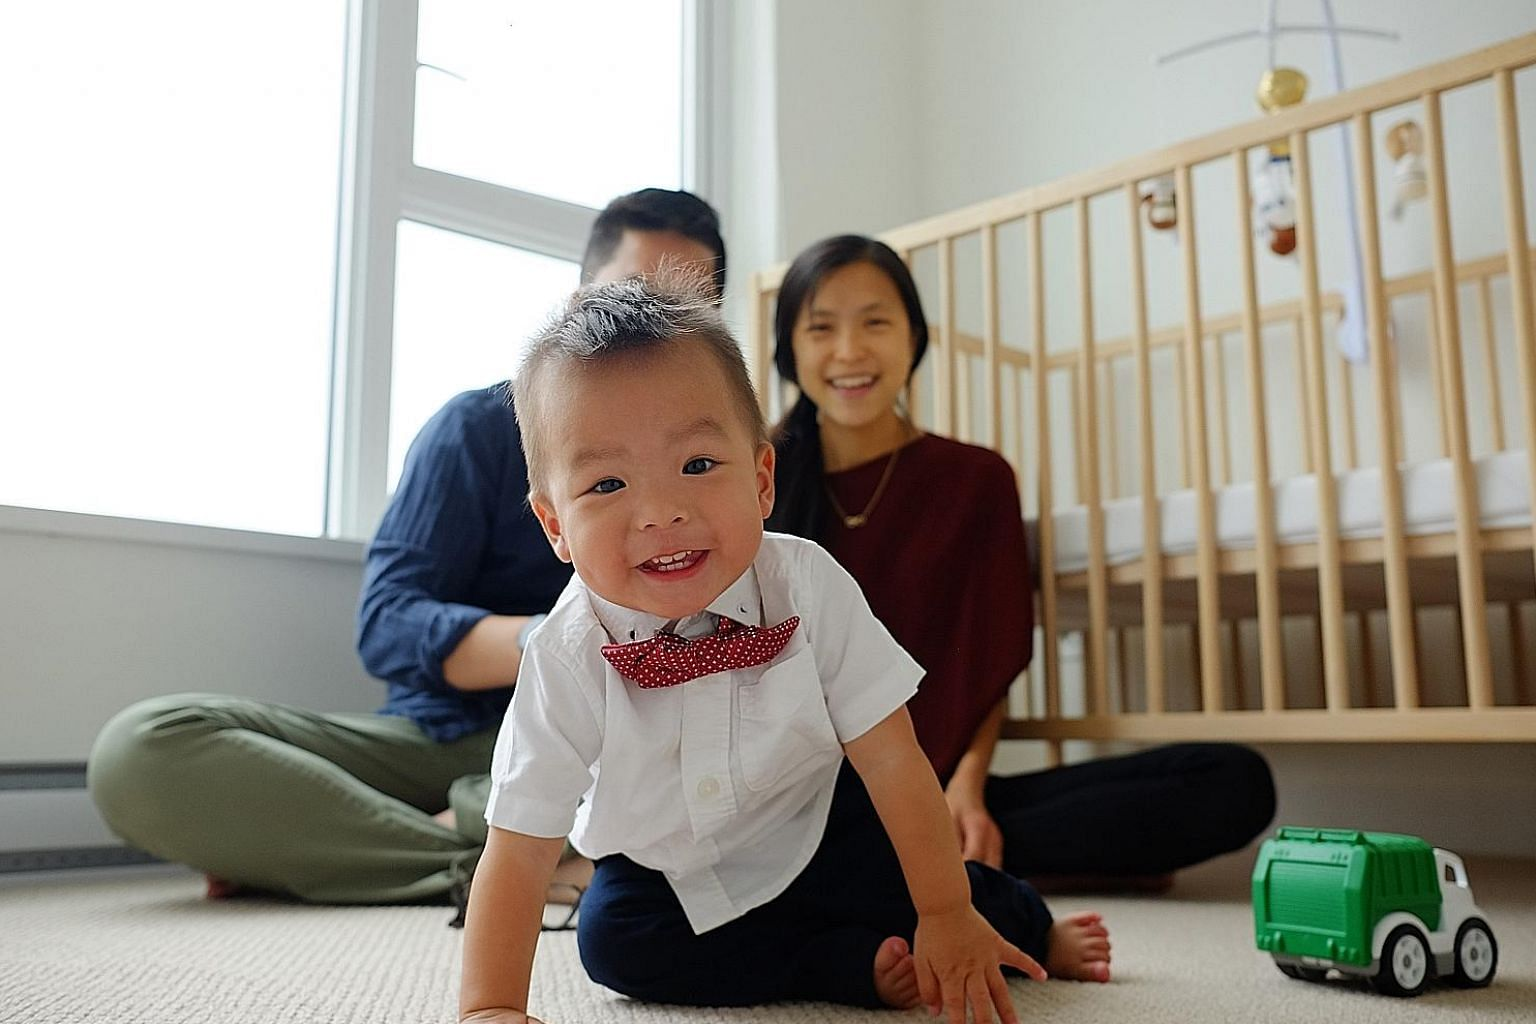 Singaporean couple Stanley Lai and Cheryln Lai, who are Canadian permanent residents, said it felt natural for their son Jonah to be Singaporean as well as Canadian.